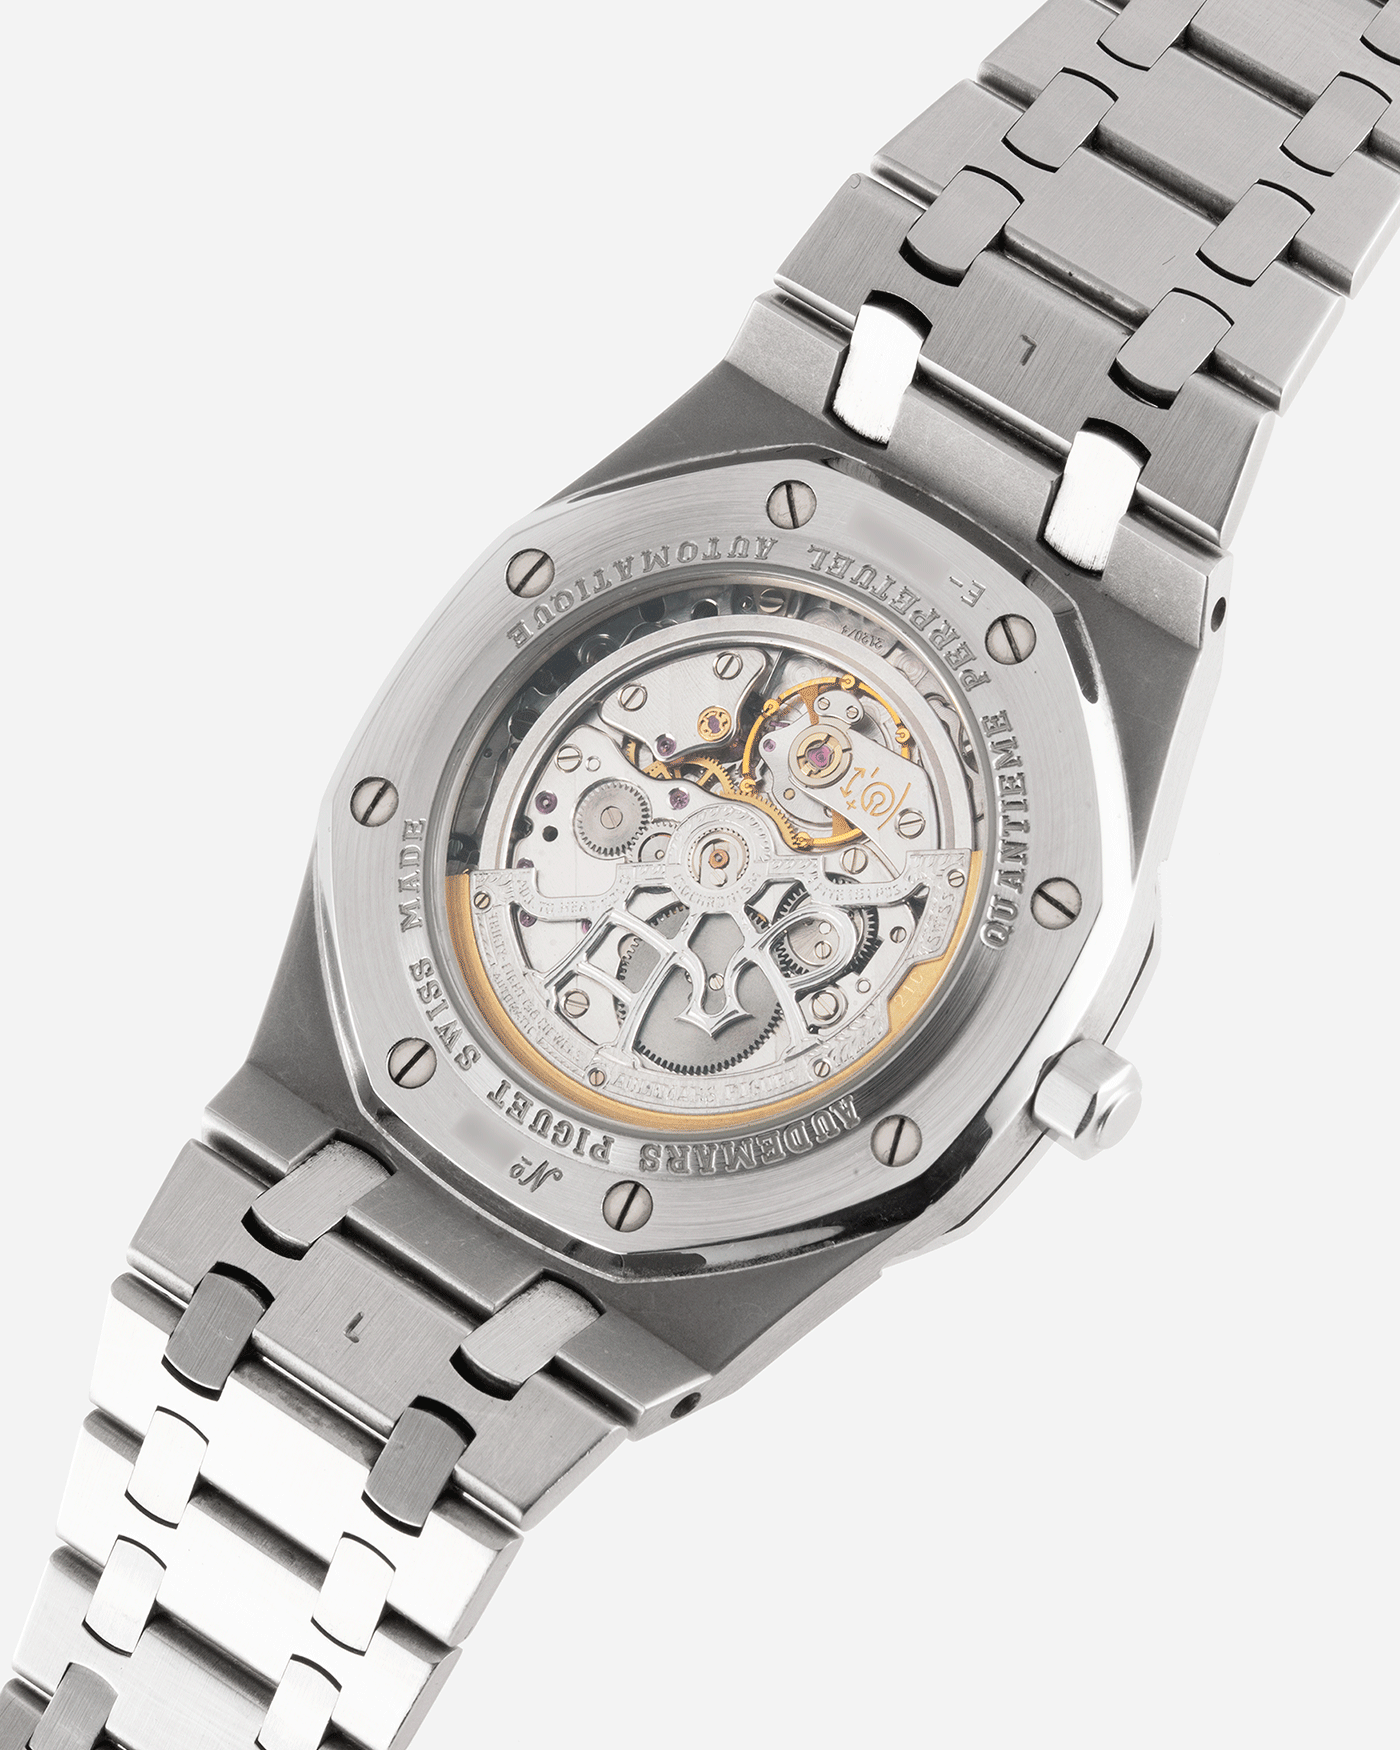 Brand: Audemars Piguet Year: 2002 Model: Royal Oak Reference Number: 25820 Material: Stainless Steel Movement: Cal. 2120/2802 Case Diameter: 39mm Bracelet: Audemars Piguet Integrated Stainless Steel Bracelet